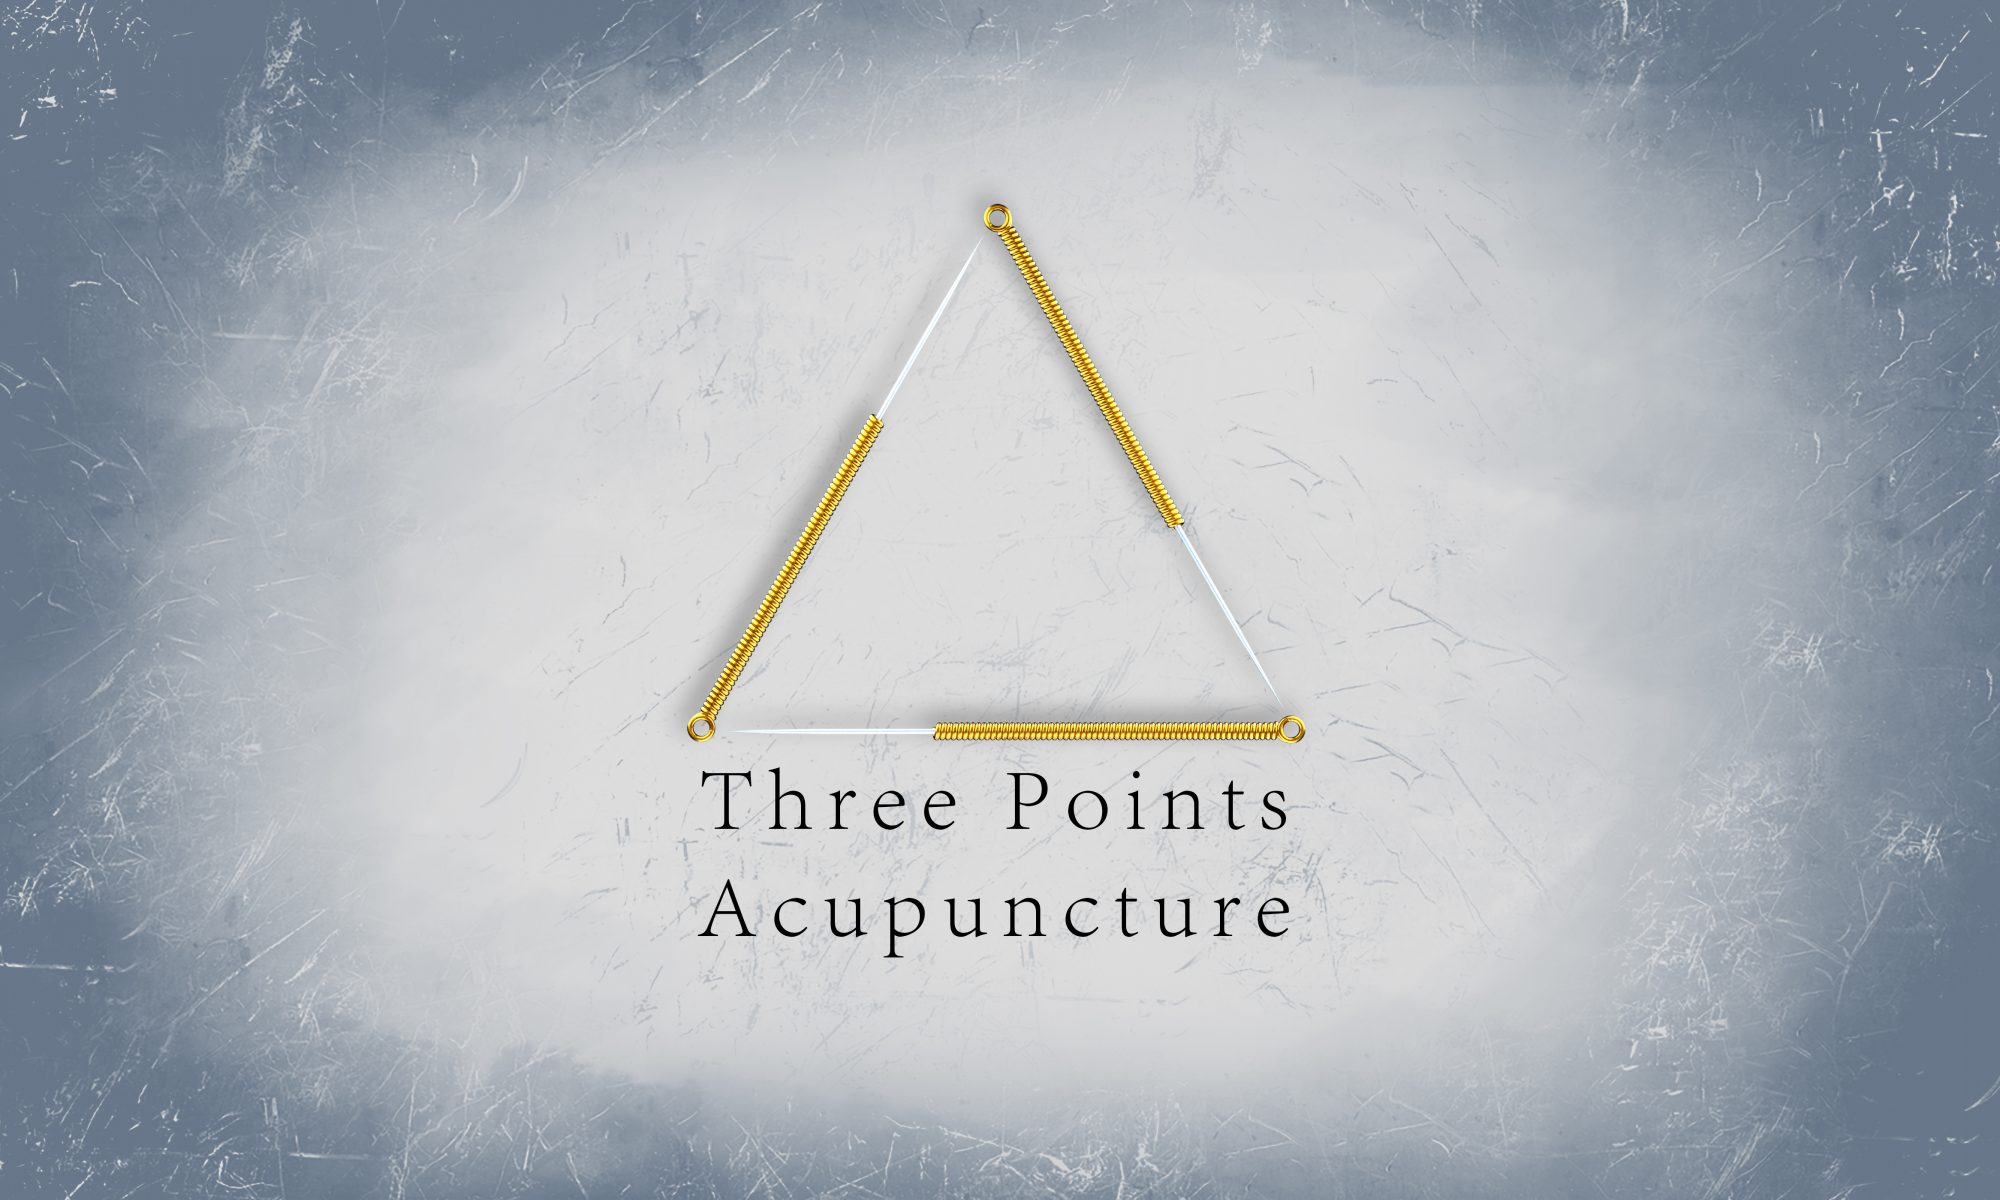 Three Points Acupuncture